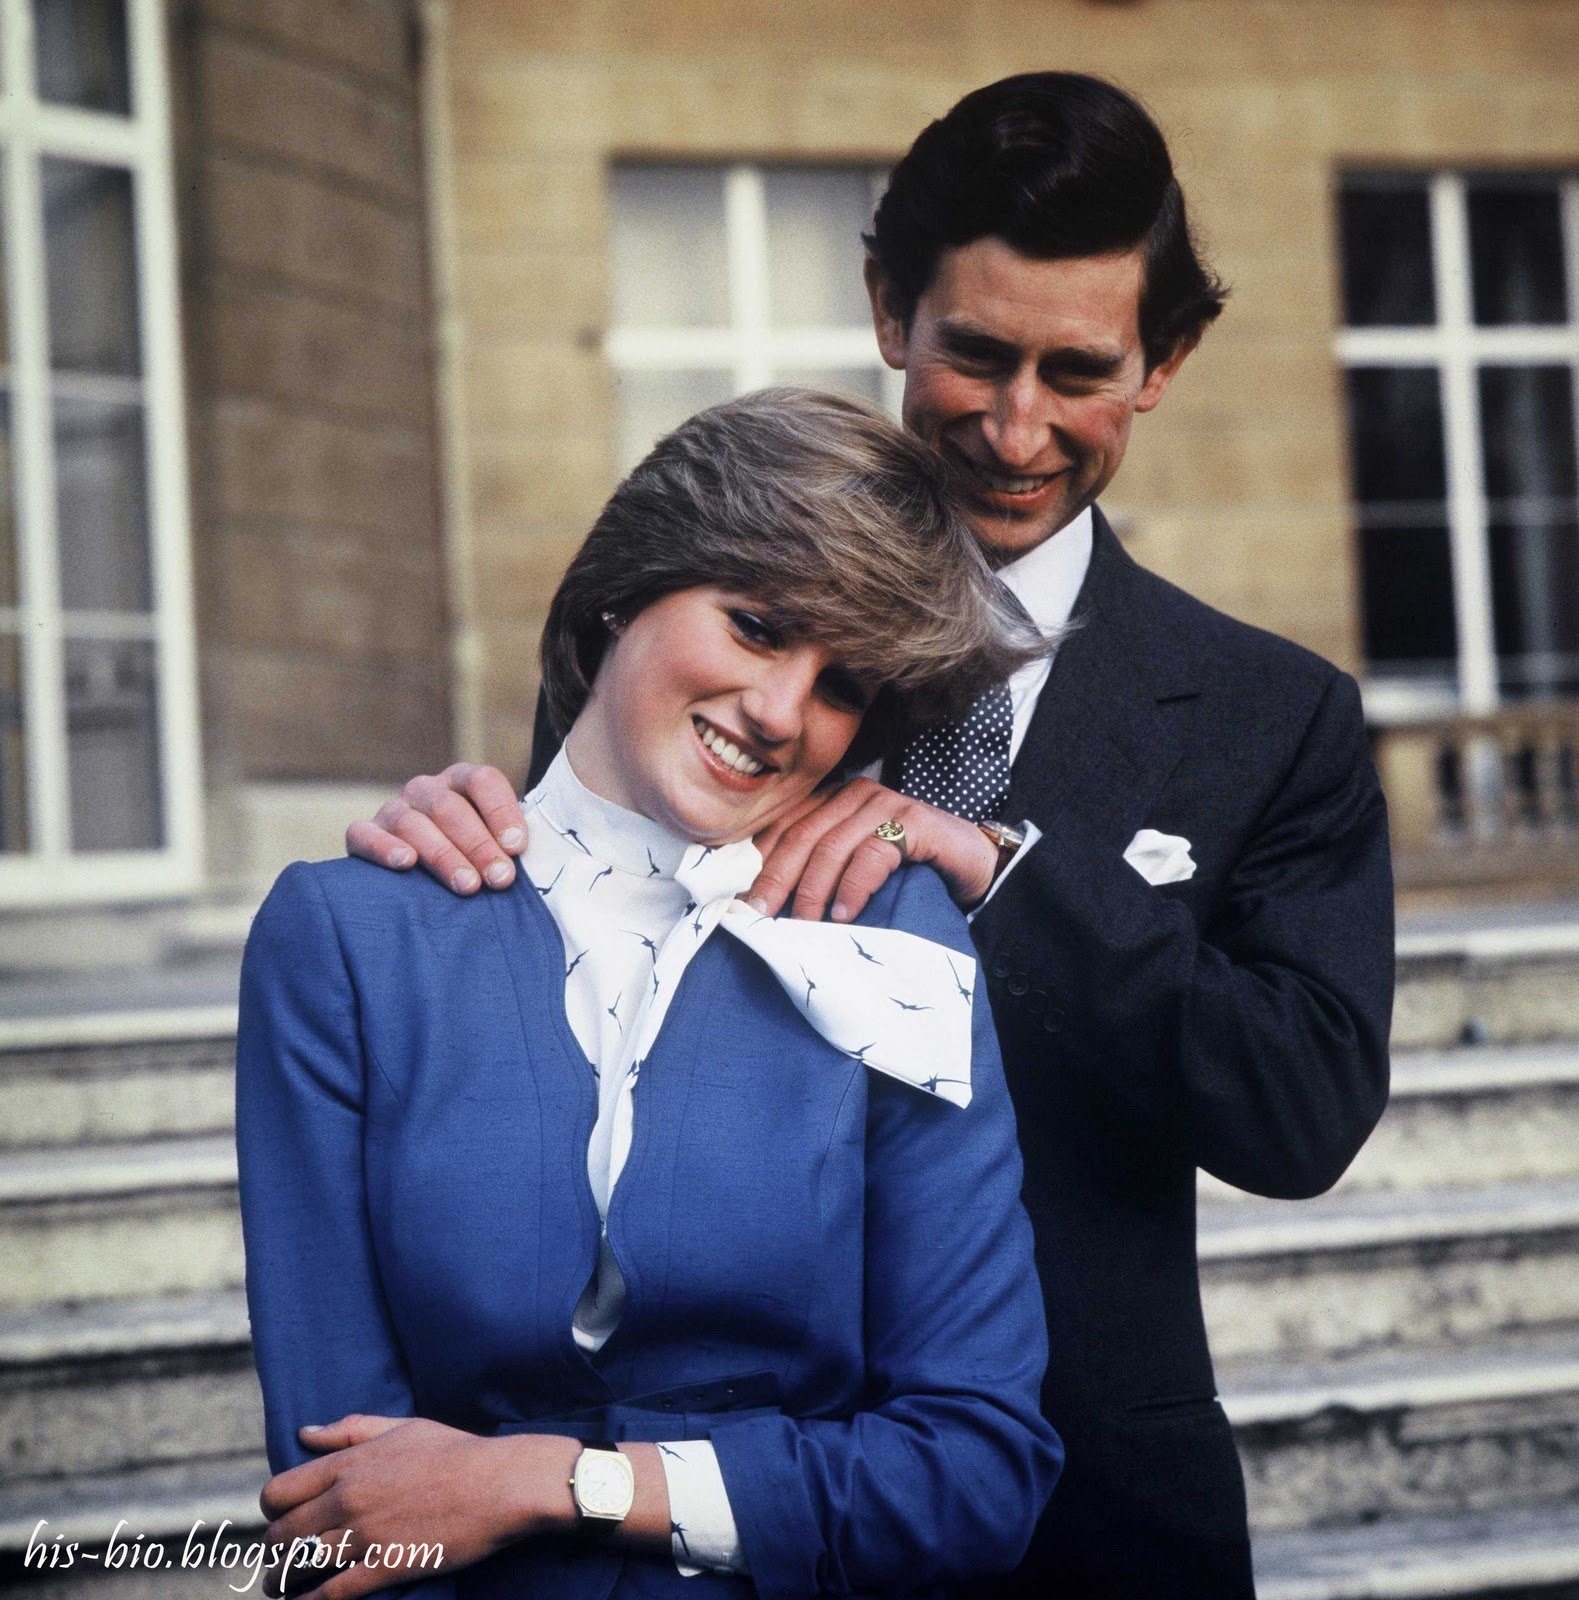 http://2.bp.blogspot.com/-02X4JLmydag/TxduyLLaPFI/AAAAAAAAAUE/qKNXTLFAHfk/s1600/Princess+Diana+and+Prince+Charles+on+their+wedding+day.jpg